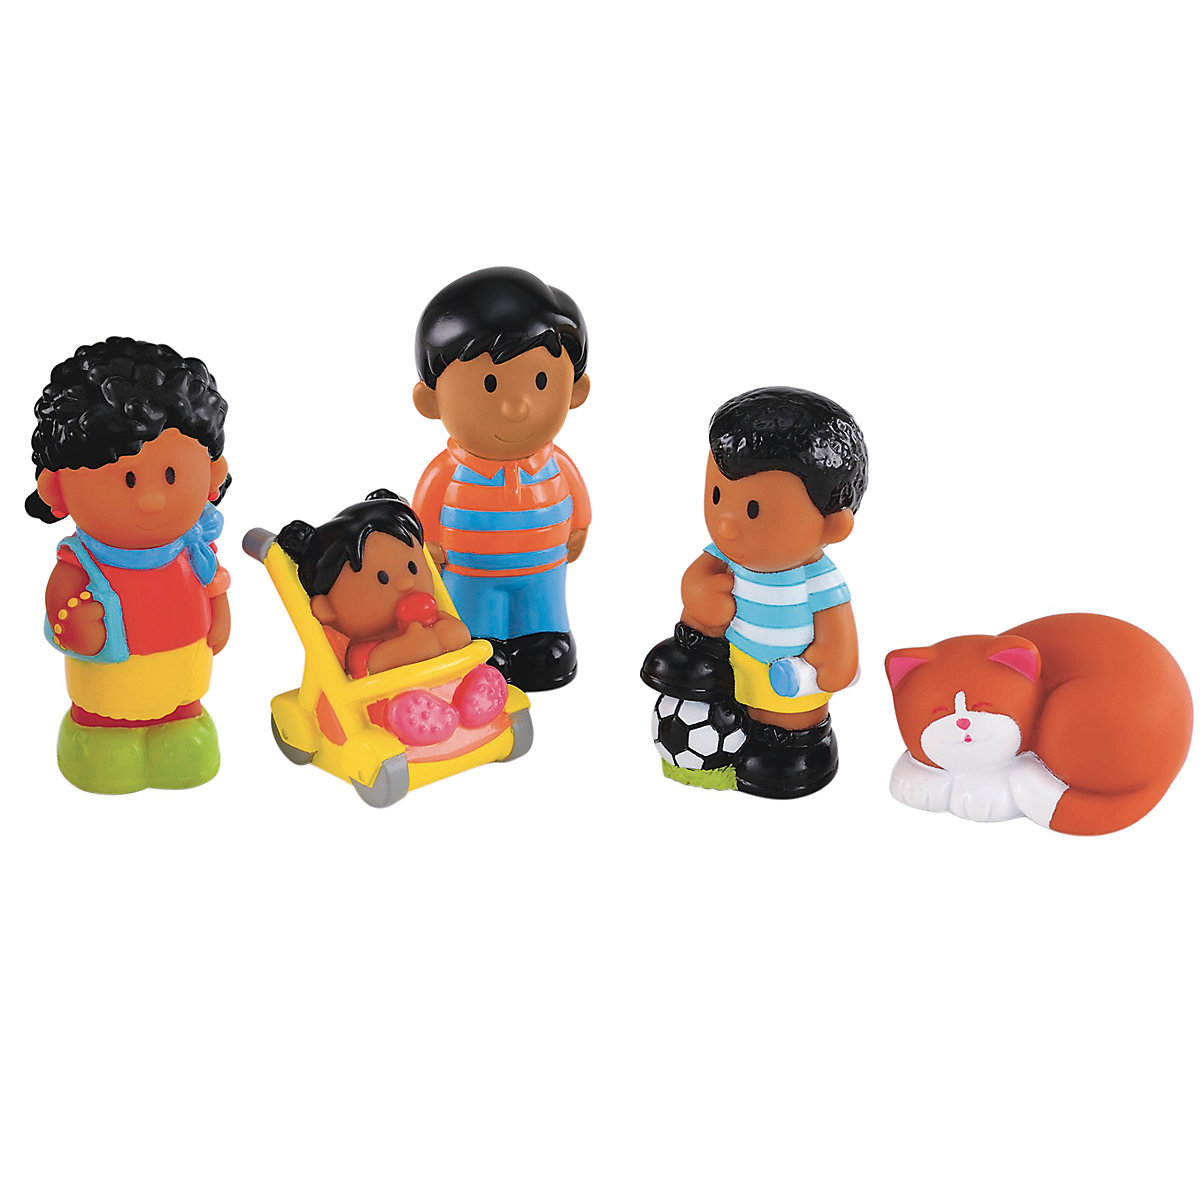 New ELC Boys and Girls Happyland Smiley Family Toy From 18 months - Smiley Gifts